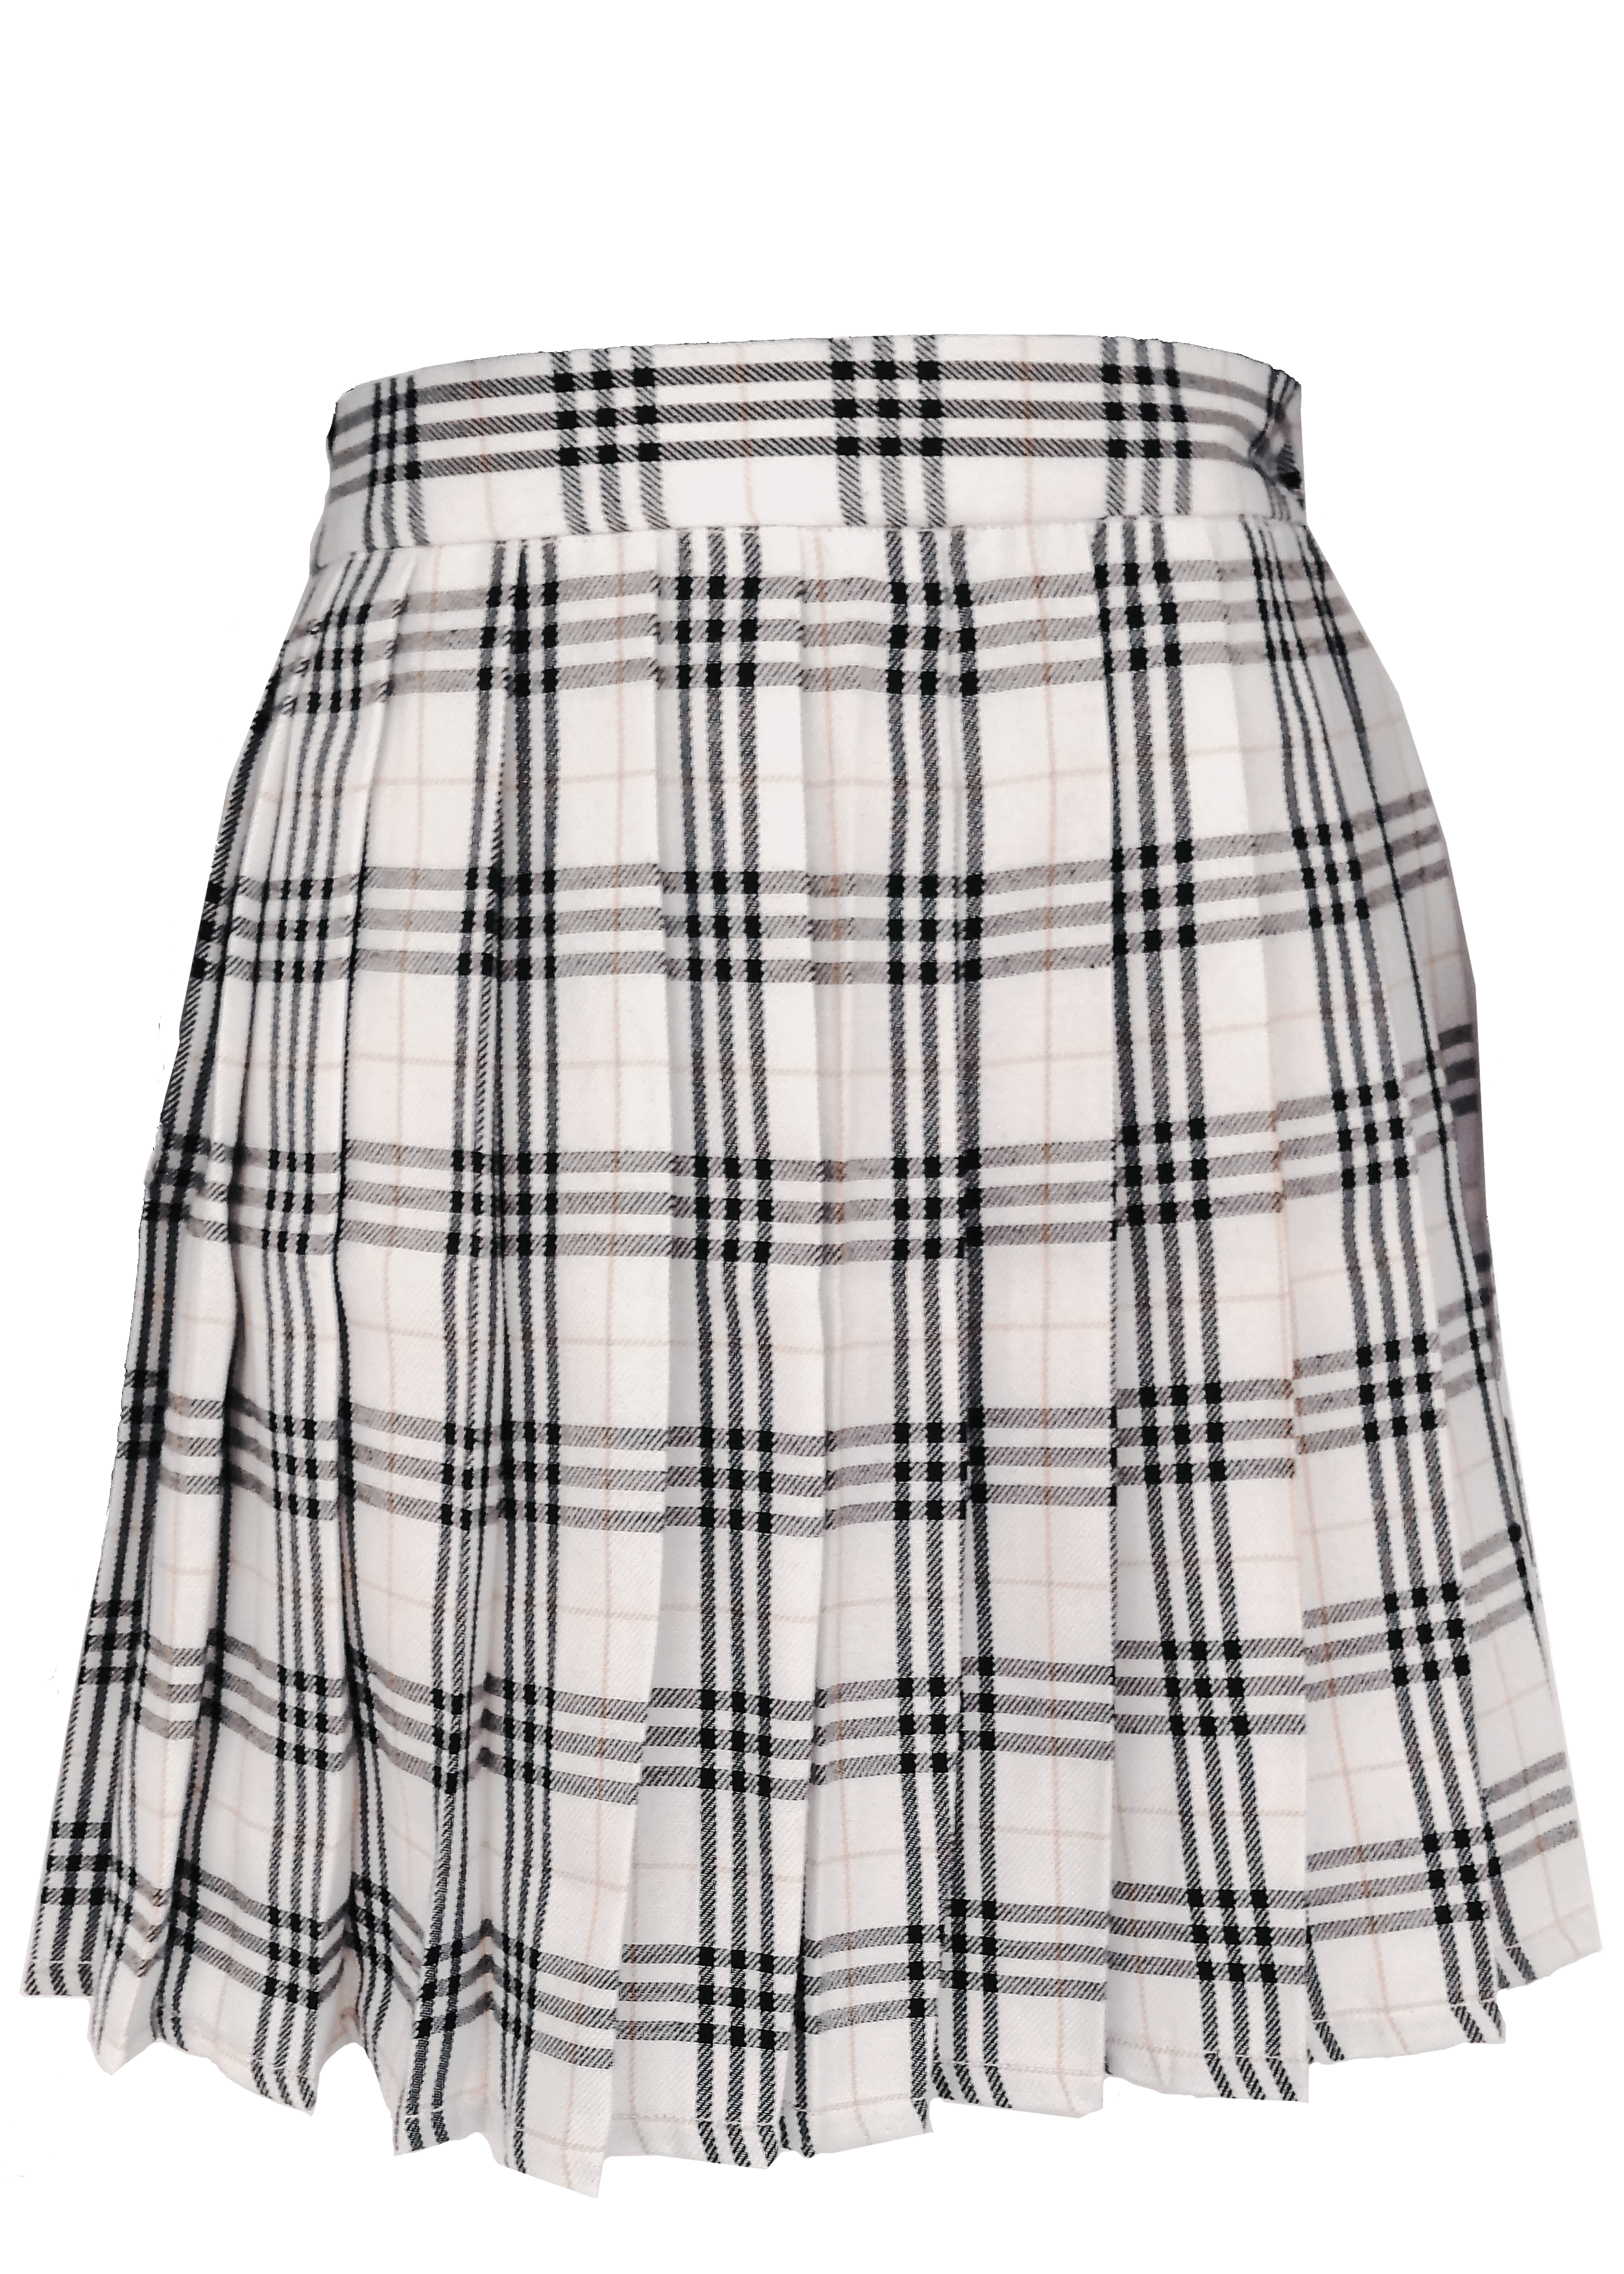 Japanese Pleated Plaid Skirt